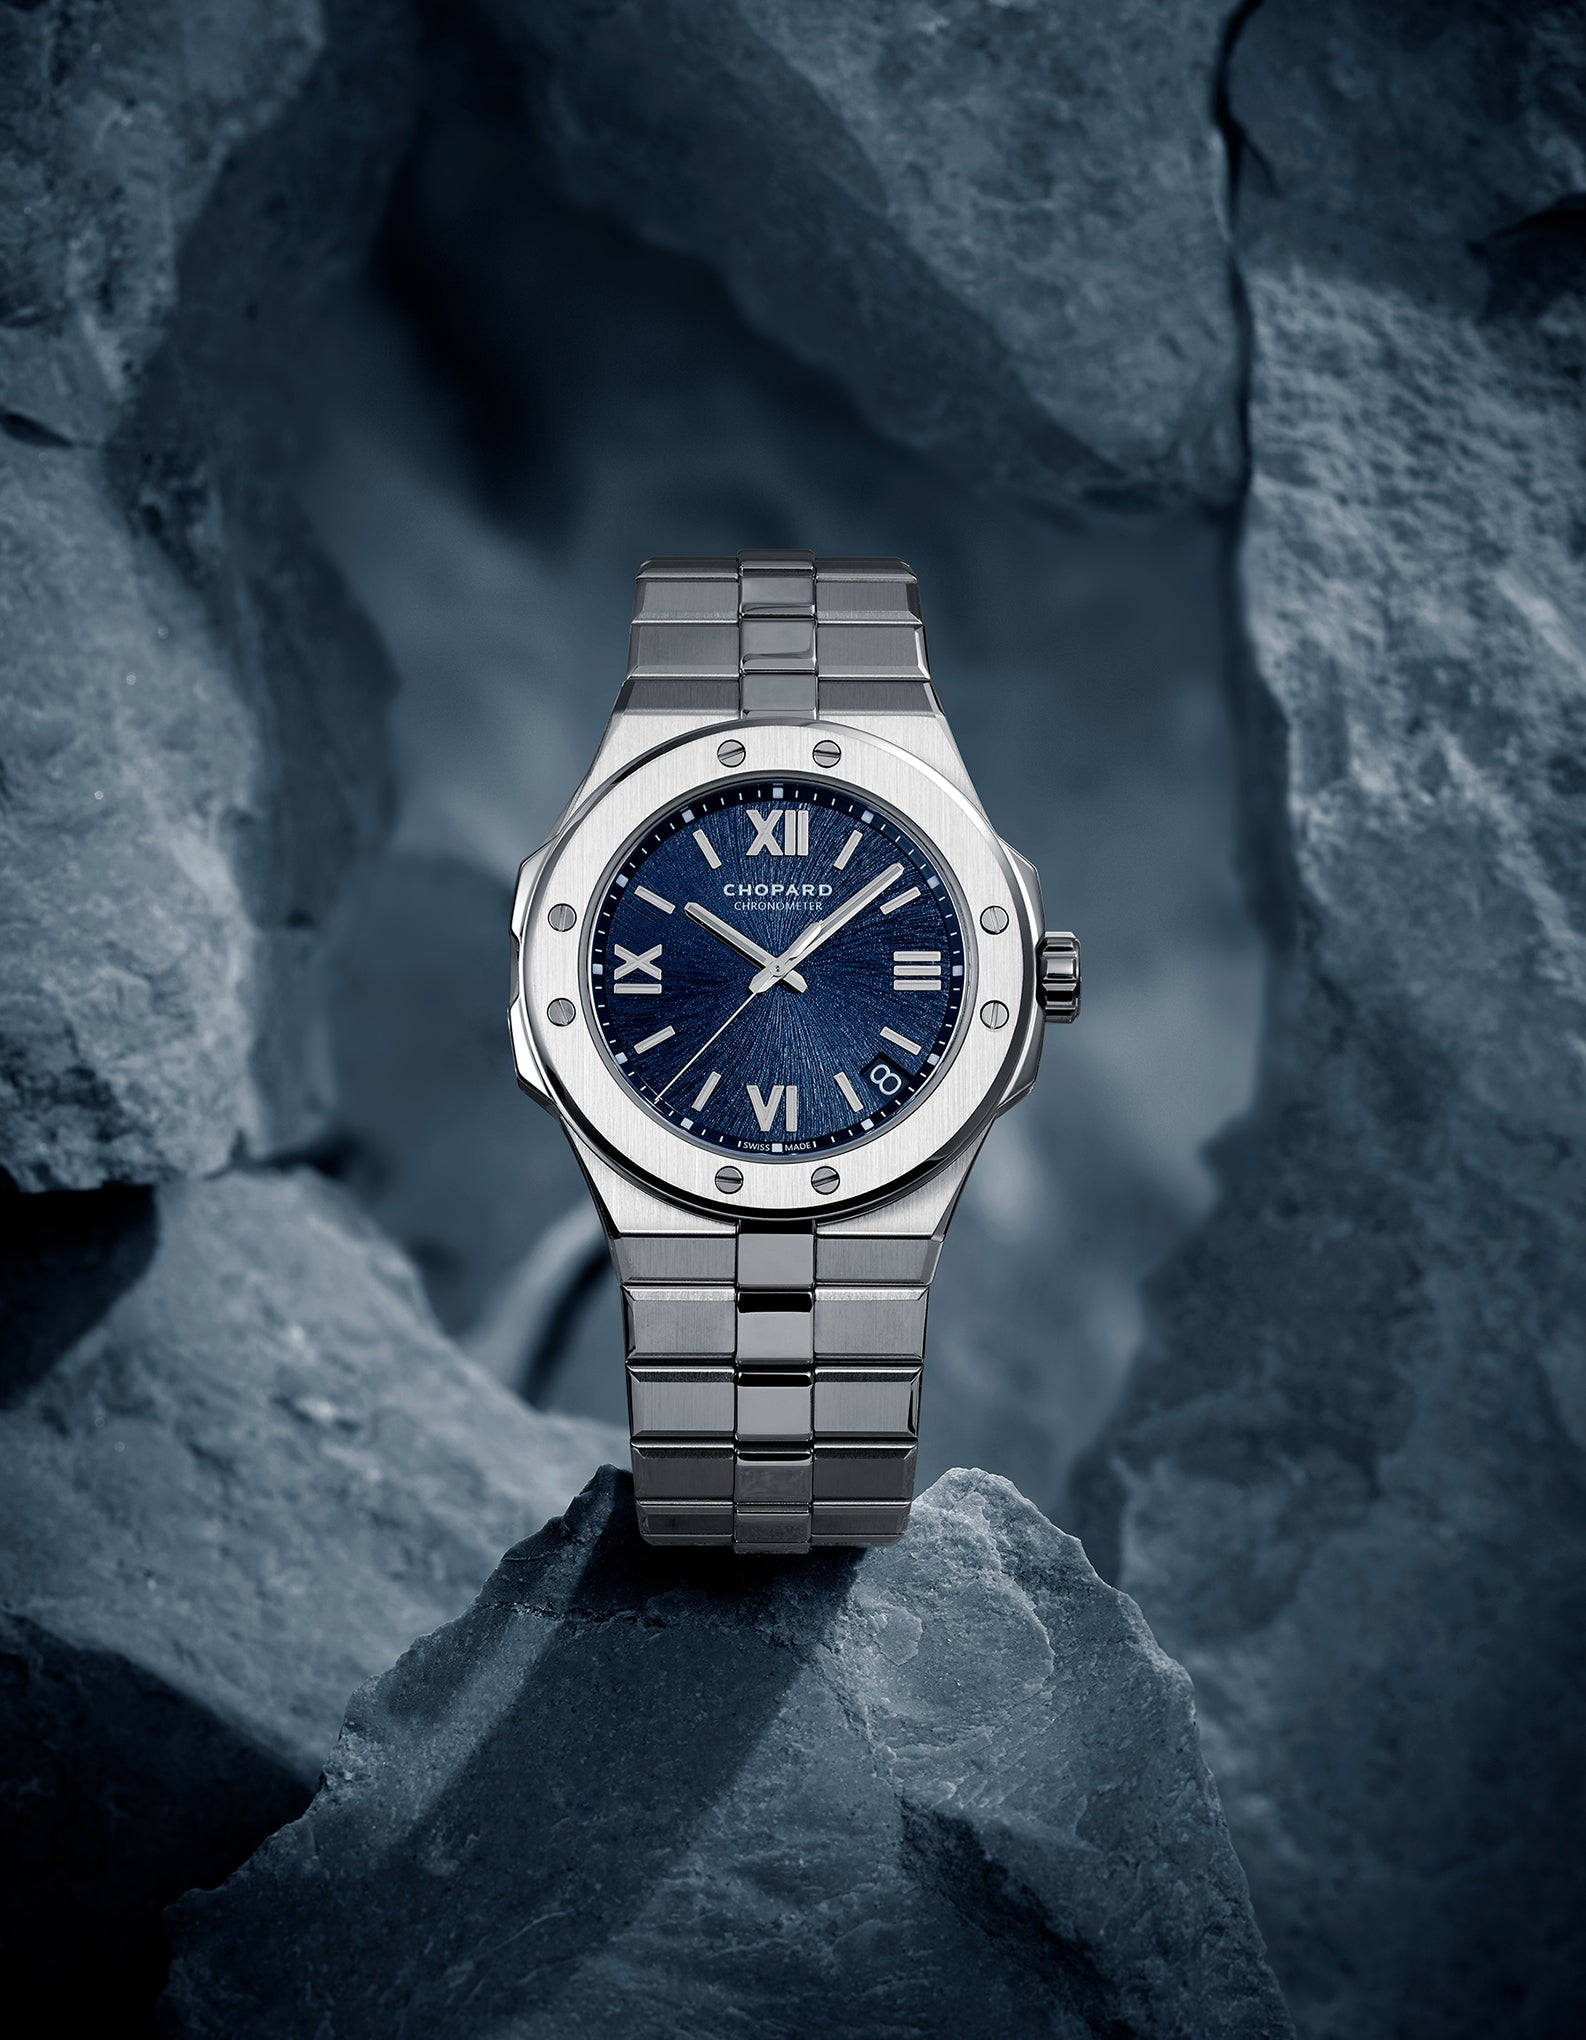 Chopard Alpine Eagle stainless steel integrated bracelet sports watch with a blue dial for A Collected Man London